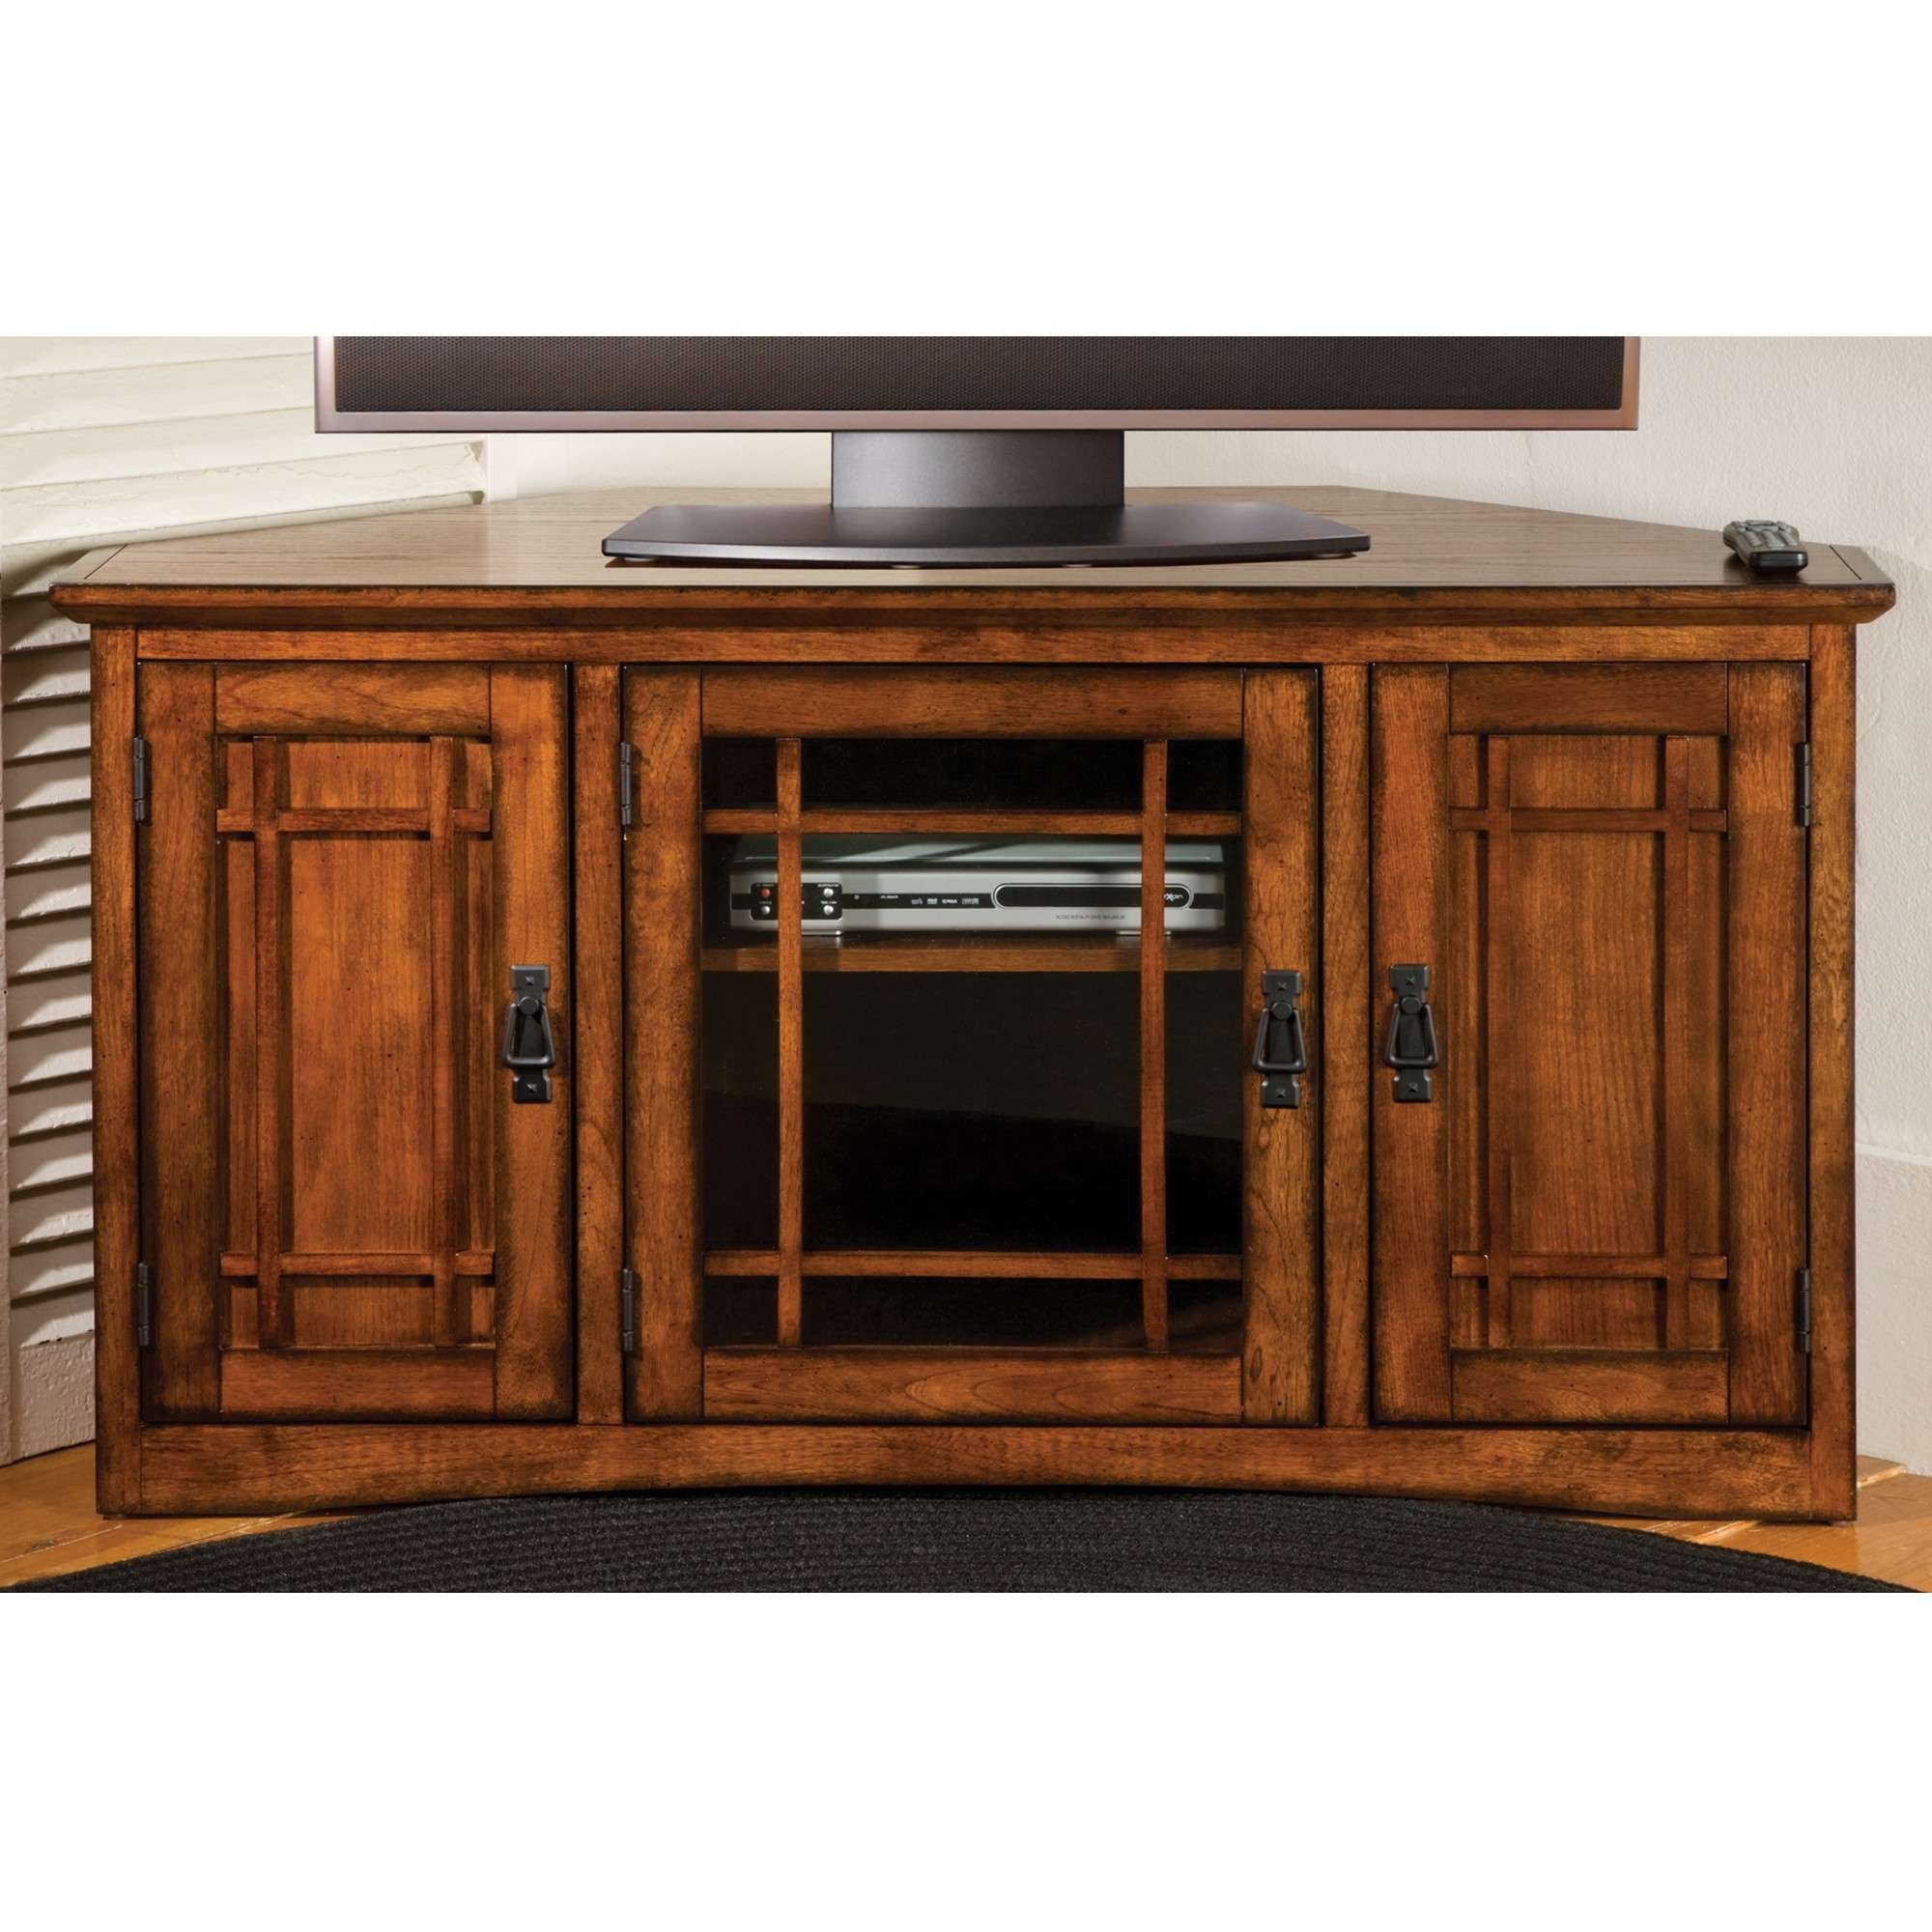 Mission Corner Tv Cabinet | Sturbridge Yankee Workshop Pertaining To Large Corner Tv Cabinets (View 14 of 20)